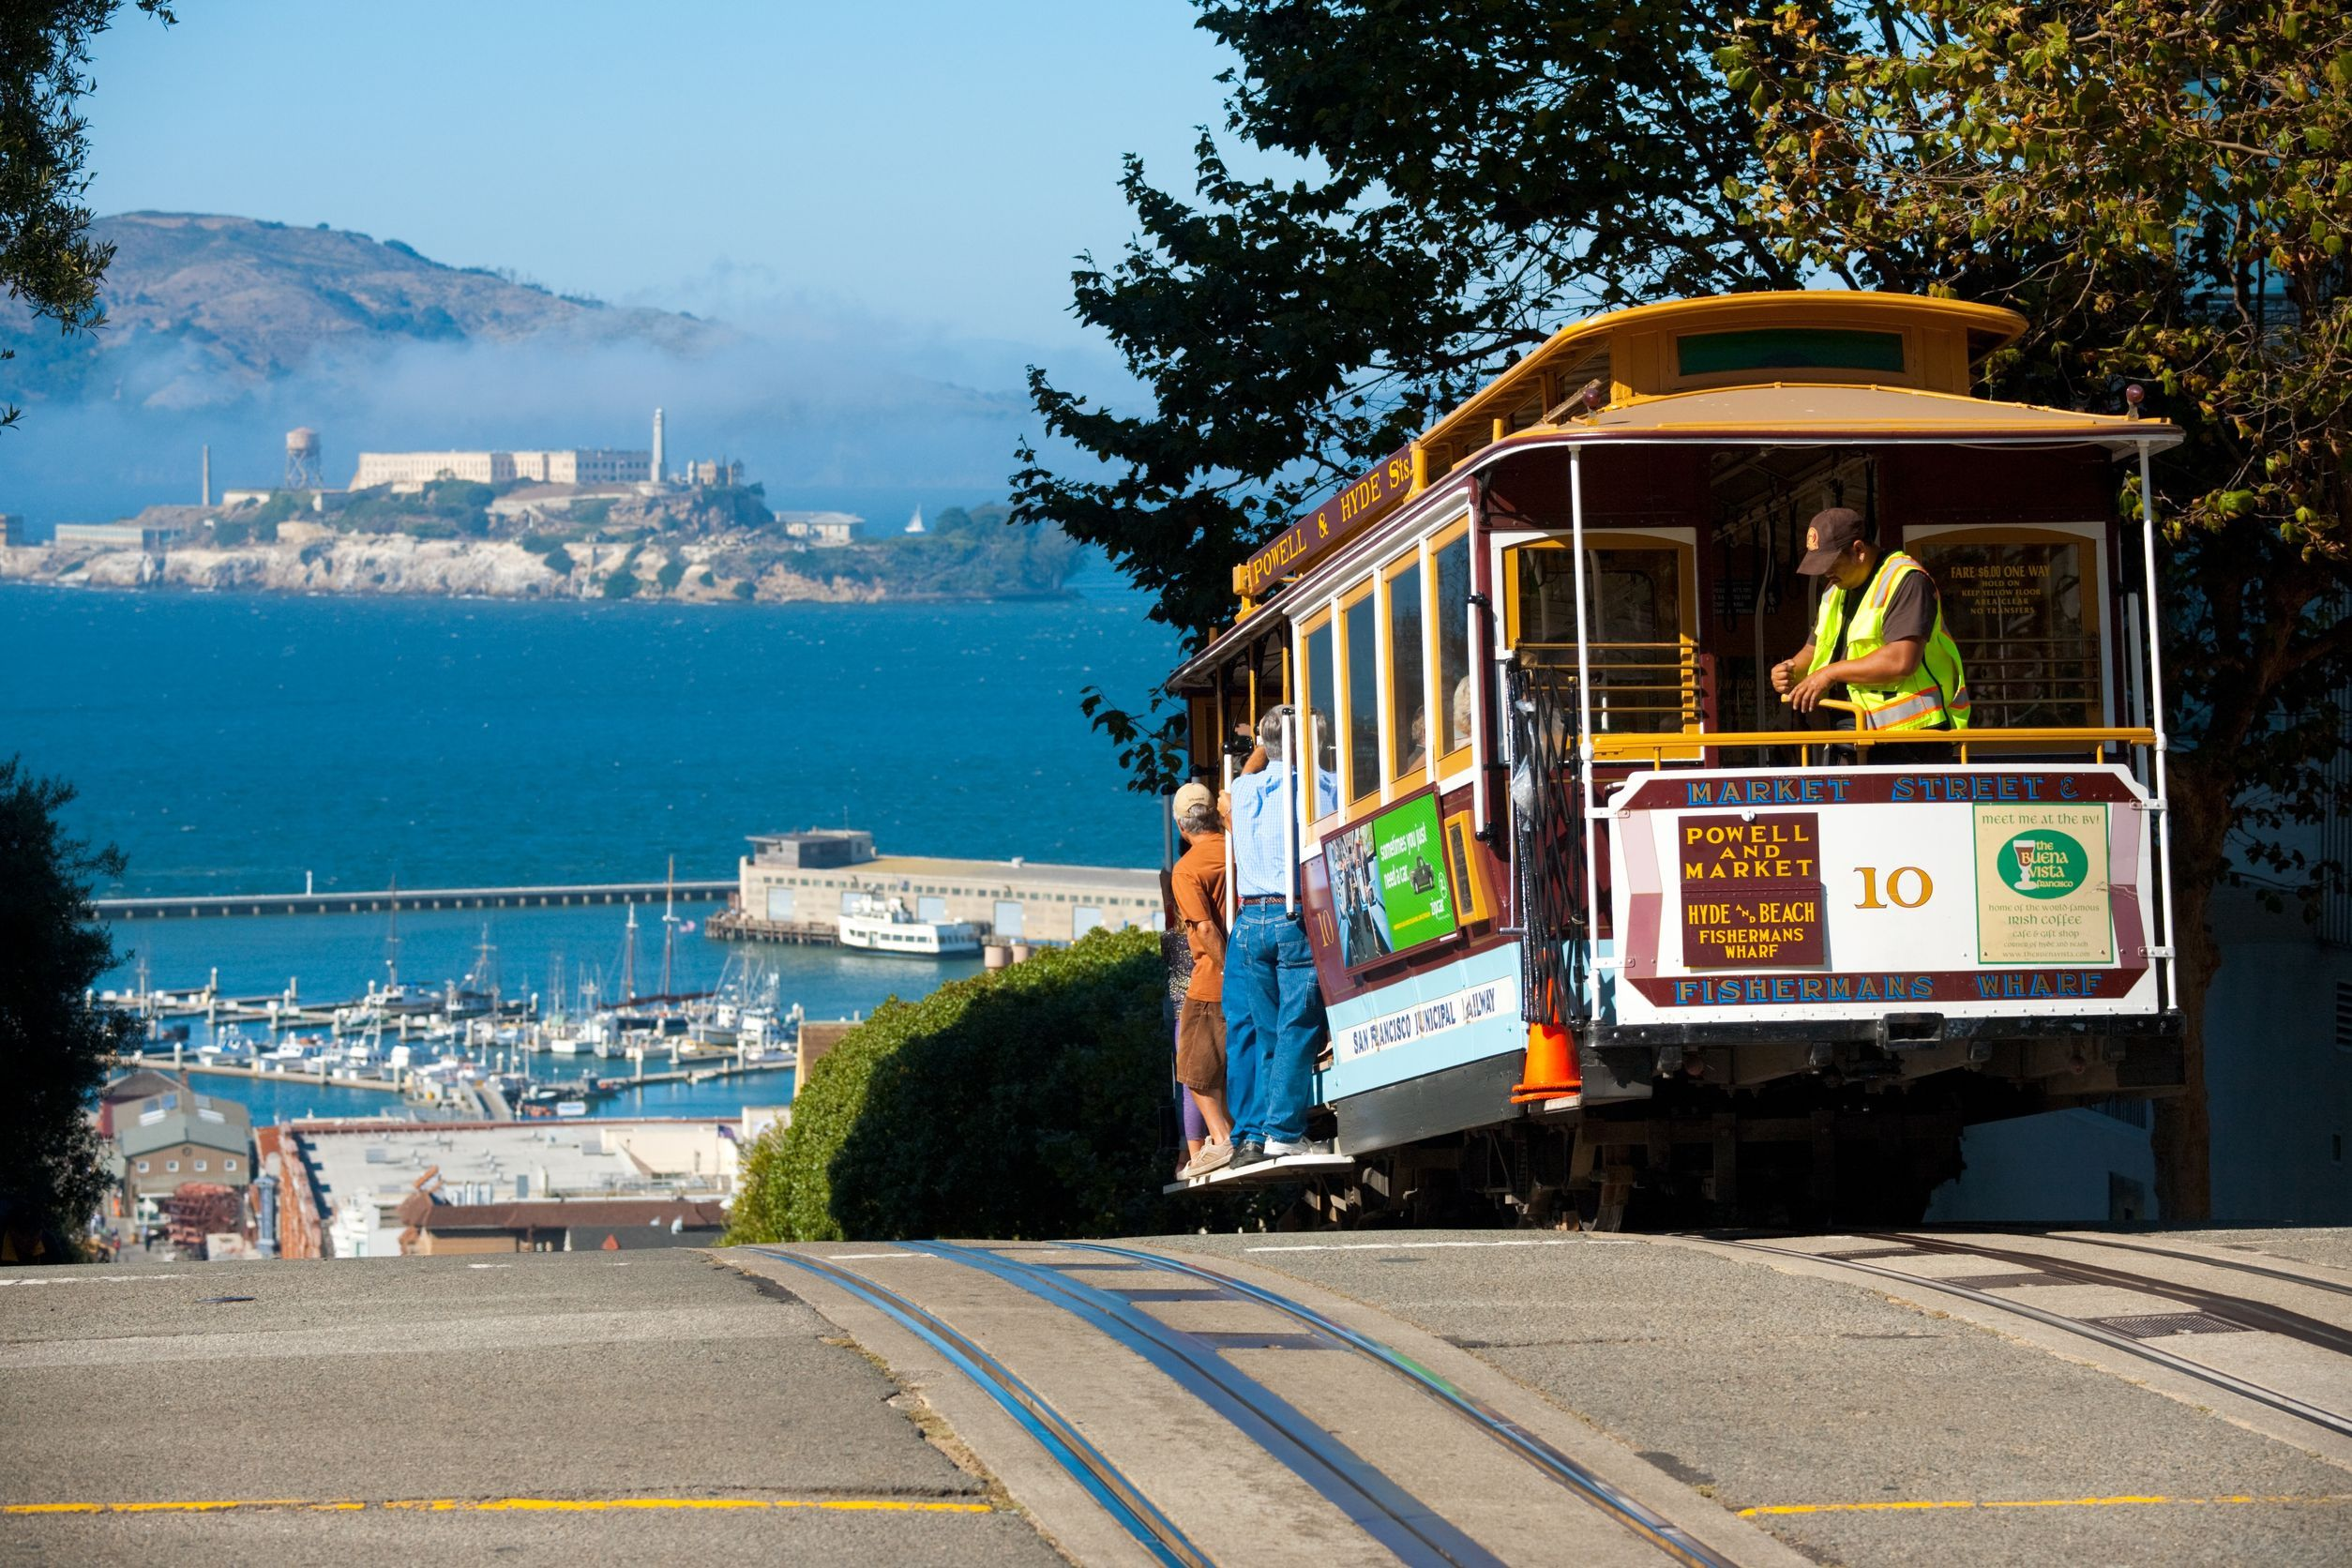 San Francisco Cable Car Trams Ride A Cable Car This Was So